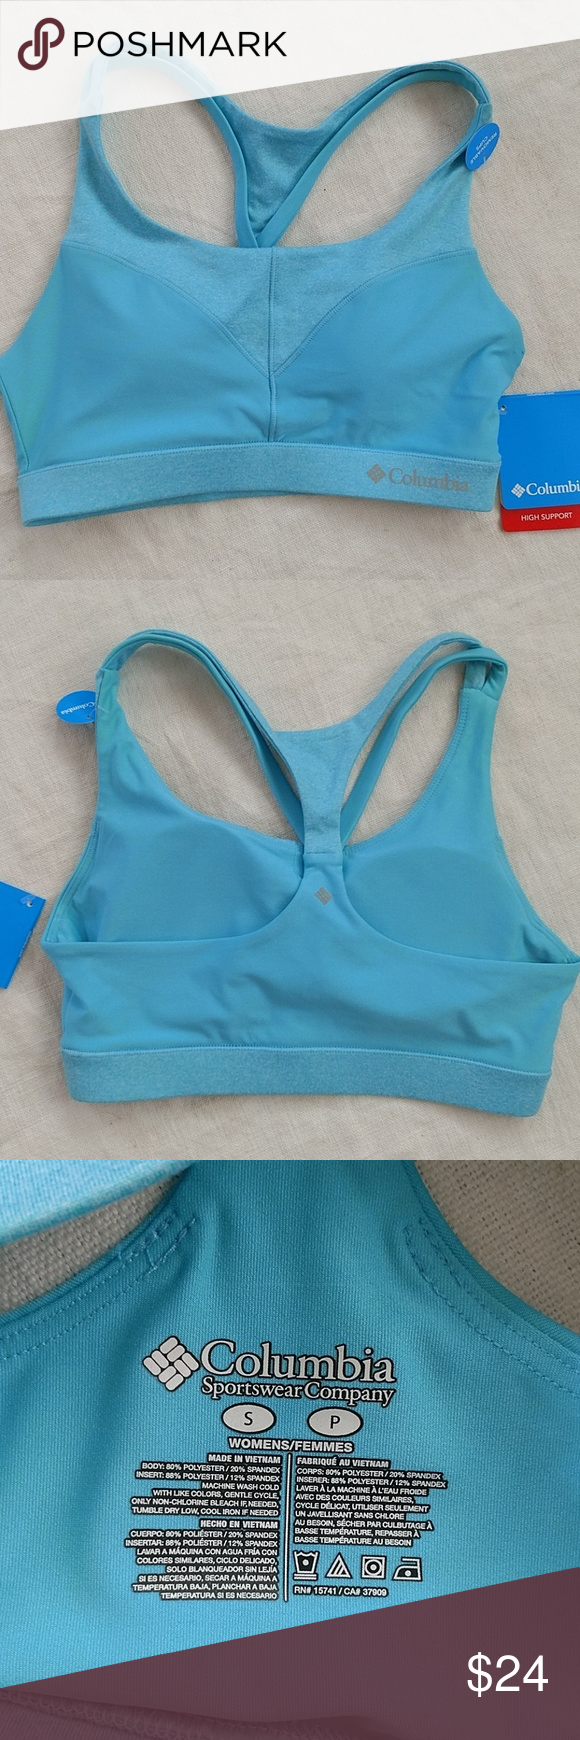 df99f2d4ec1c8 Columbia sports bra Brand new with tags Columbia sports bra women s size  small aqua colored thanks